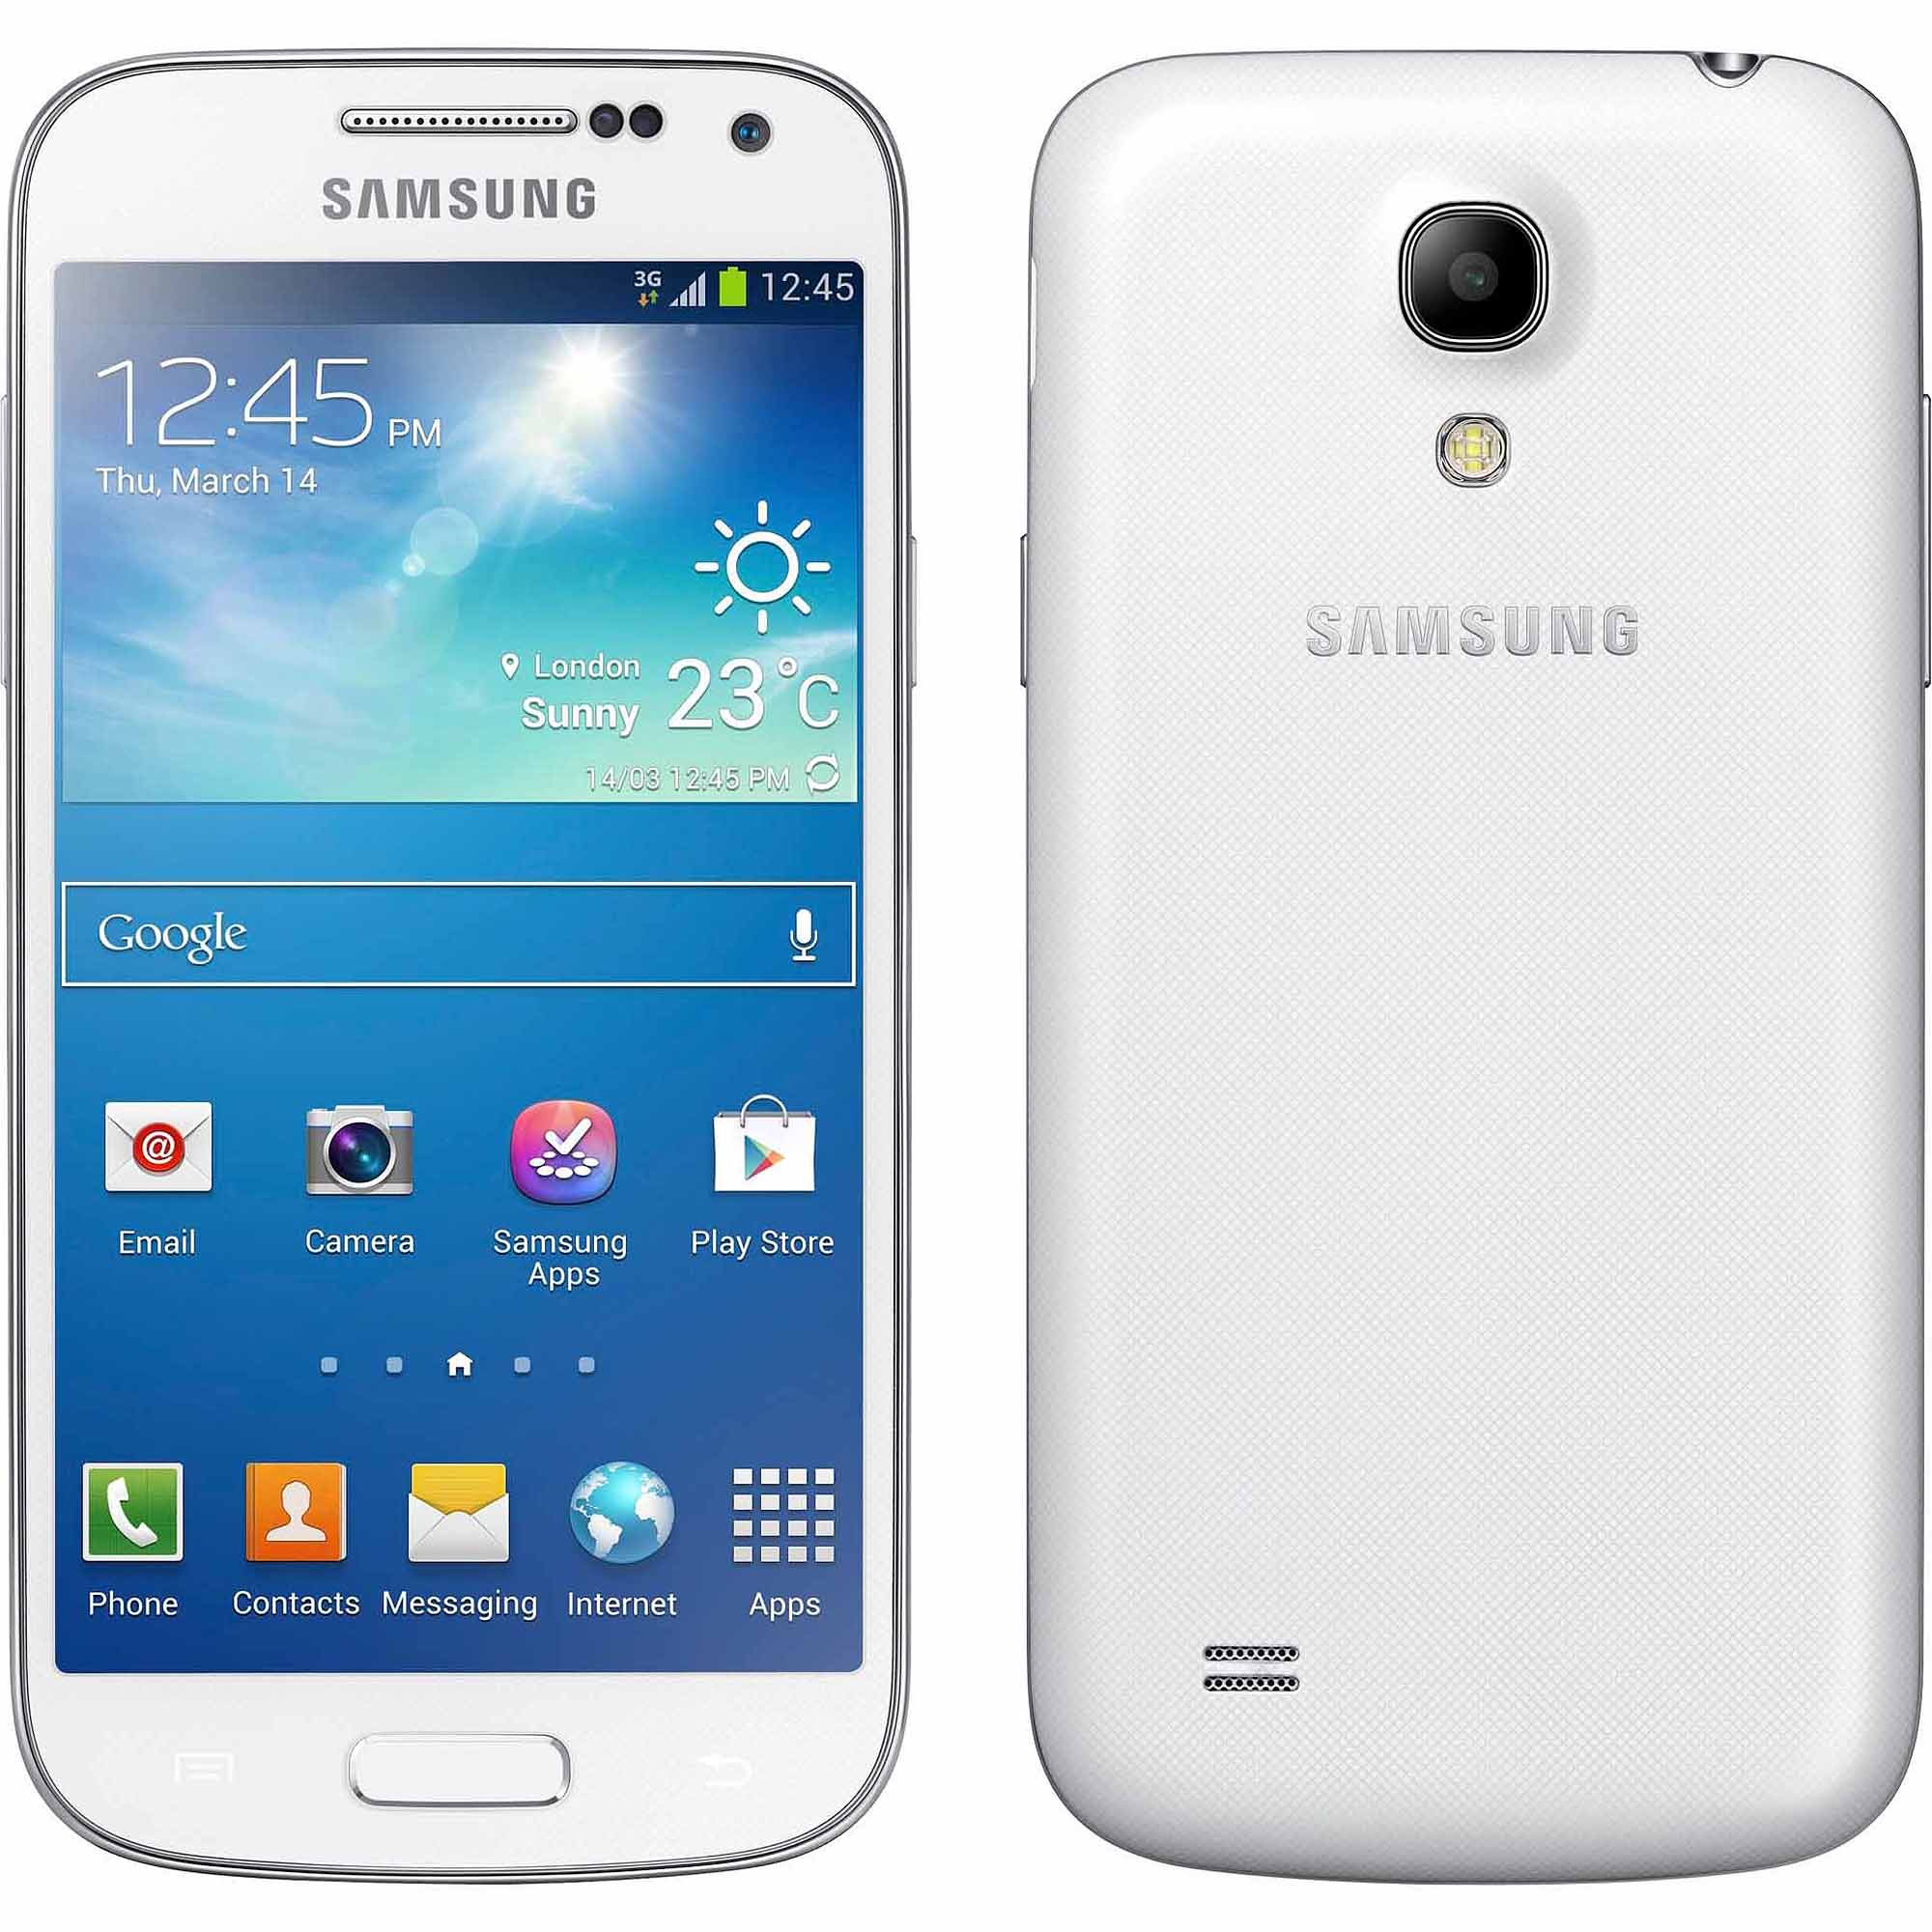 Samsung Galaxy 19190 S4 mini Smartphone (Unlocked), White